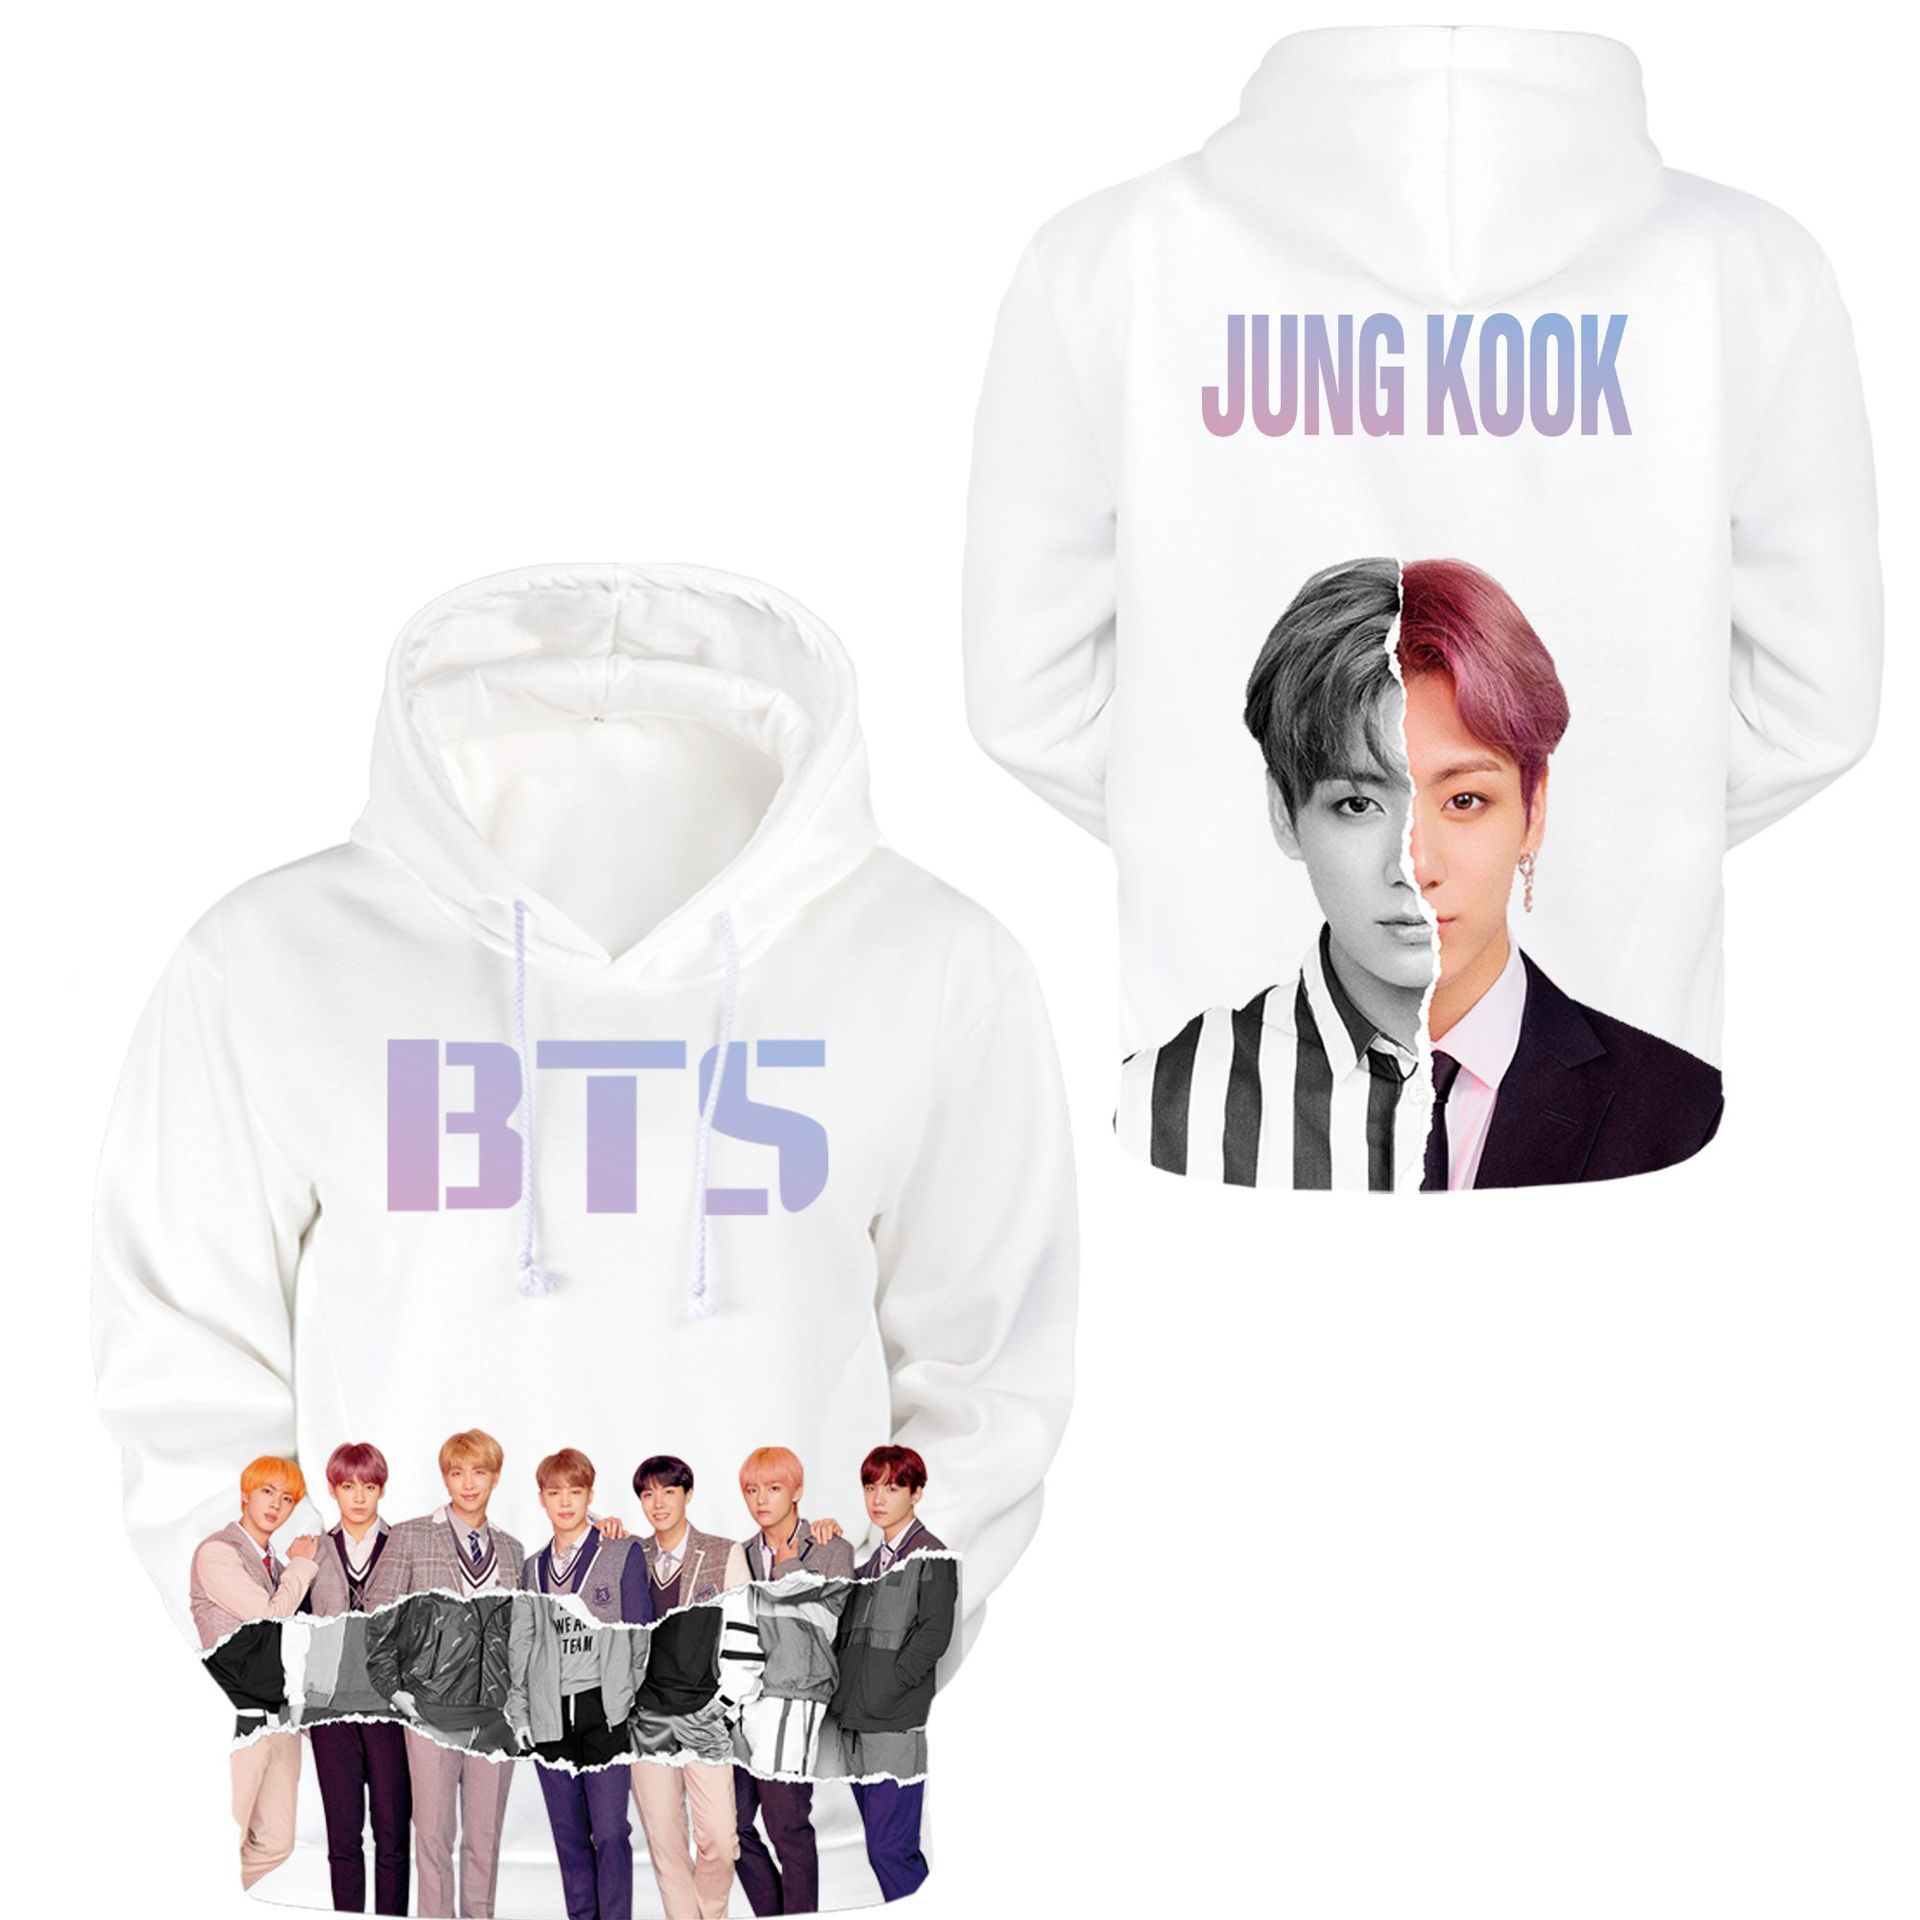 Men's Accessories K-pop Bangtan Boy Love Yourself Concert Support Hand Banner Fabric Hang Up Poster Arm Warmers Jin Jimin Suga Jungkook Hf076 Latest Fashion